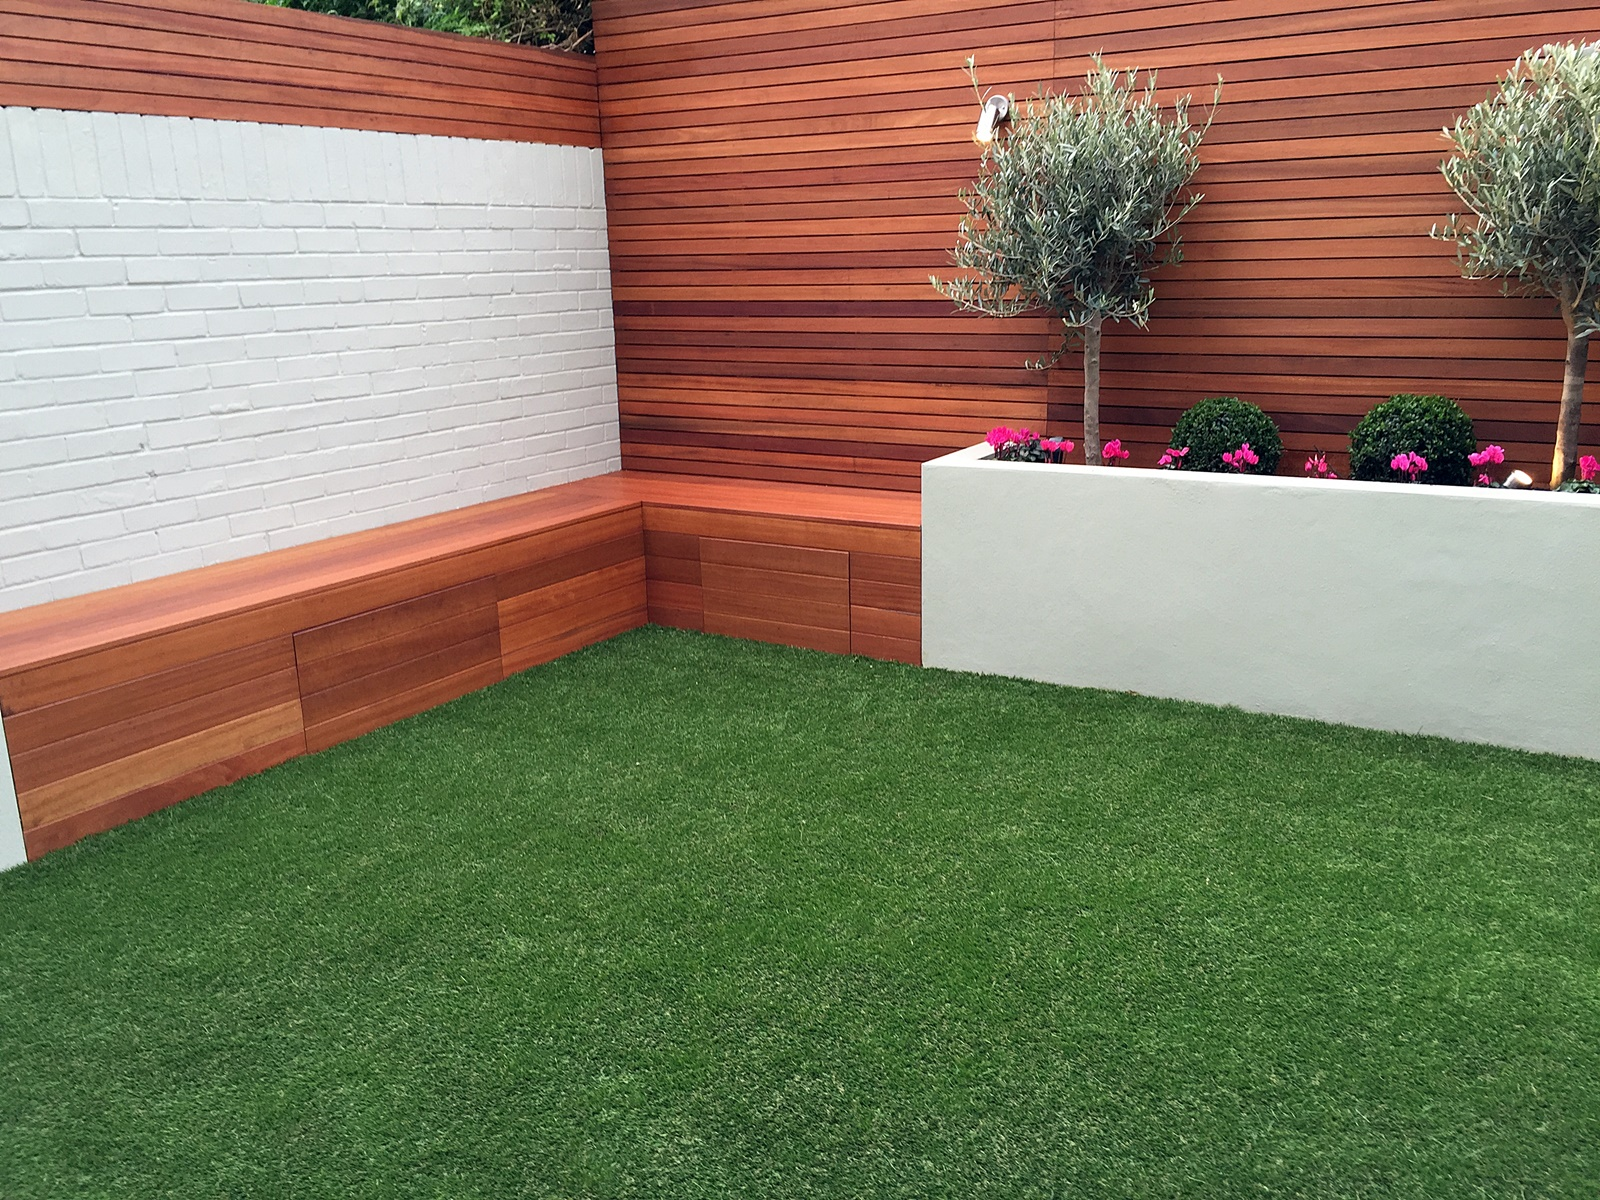 Simple modern court yard garden designer battersea fulham for Contemporary garden designs and ideas